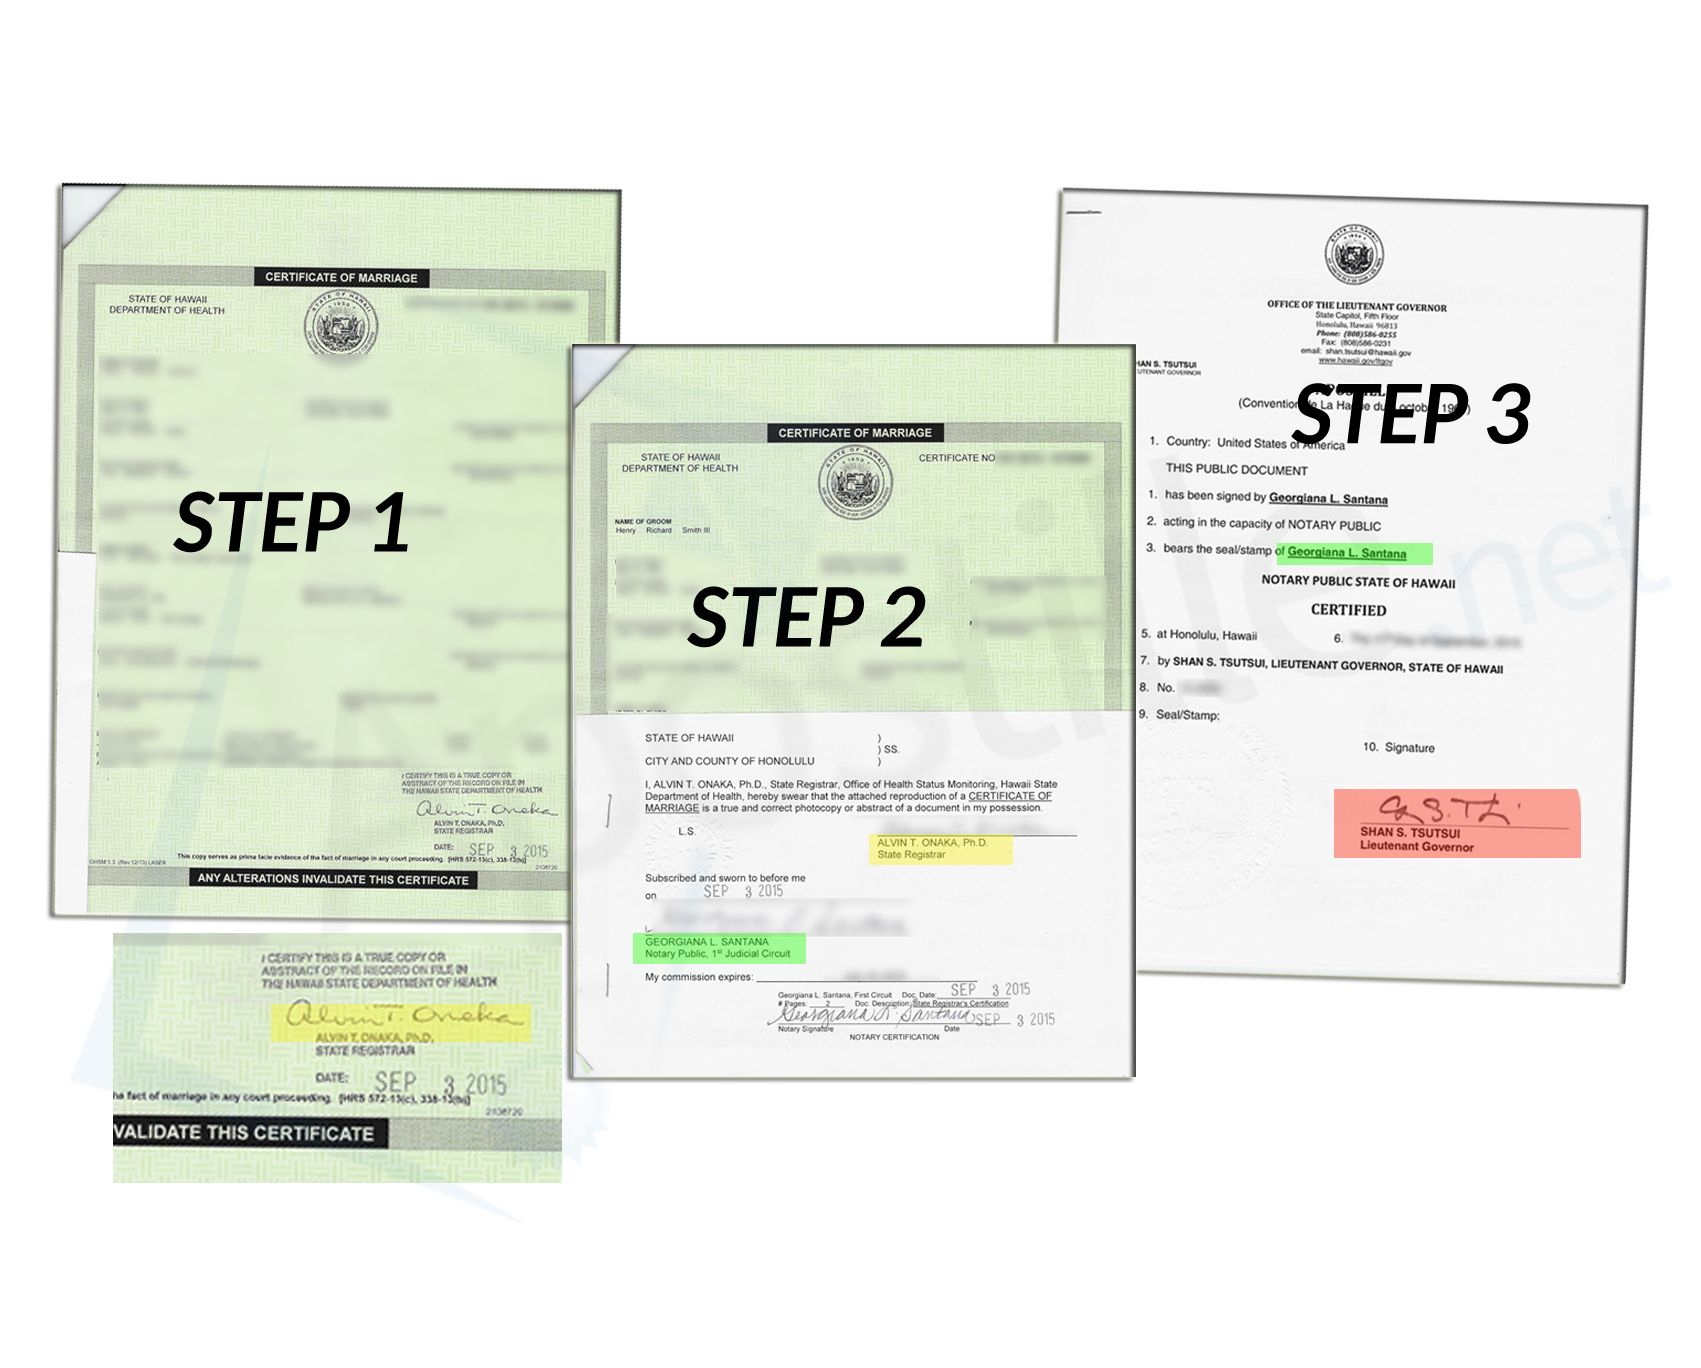 3 steps to obtain an apostille in Hawaii   State of Hawaii Sample ...